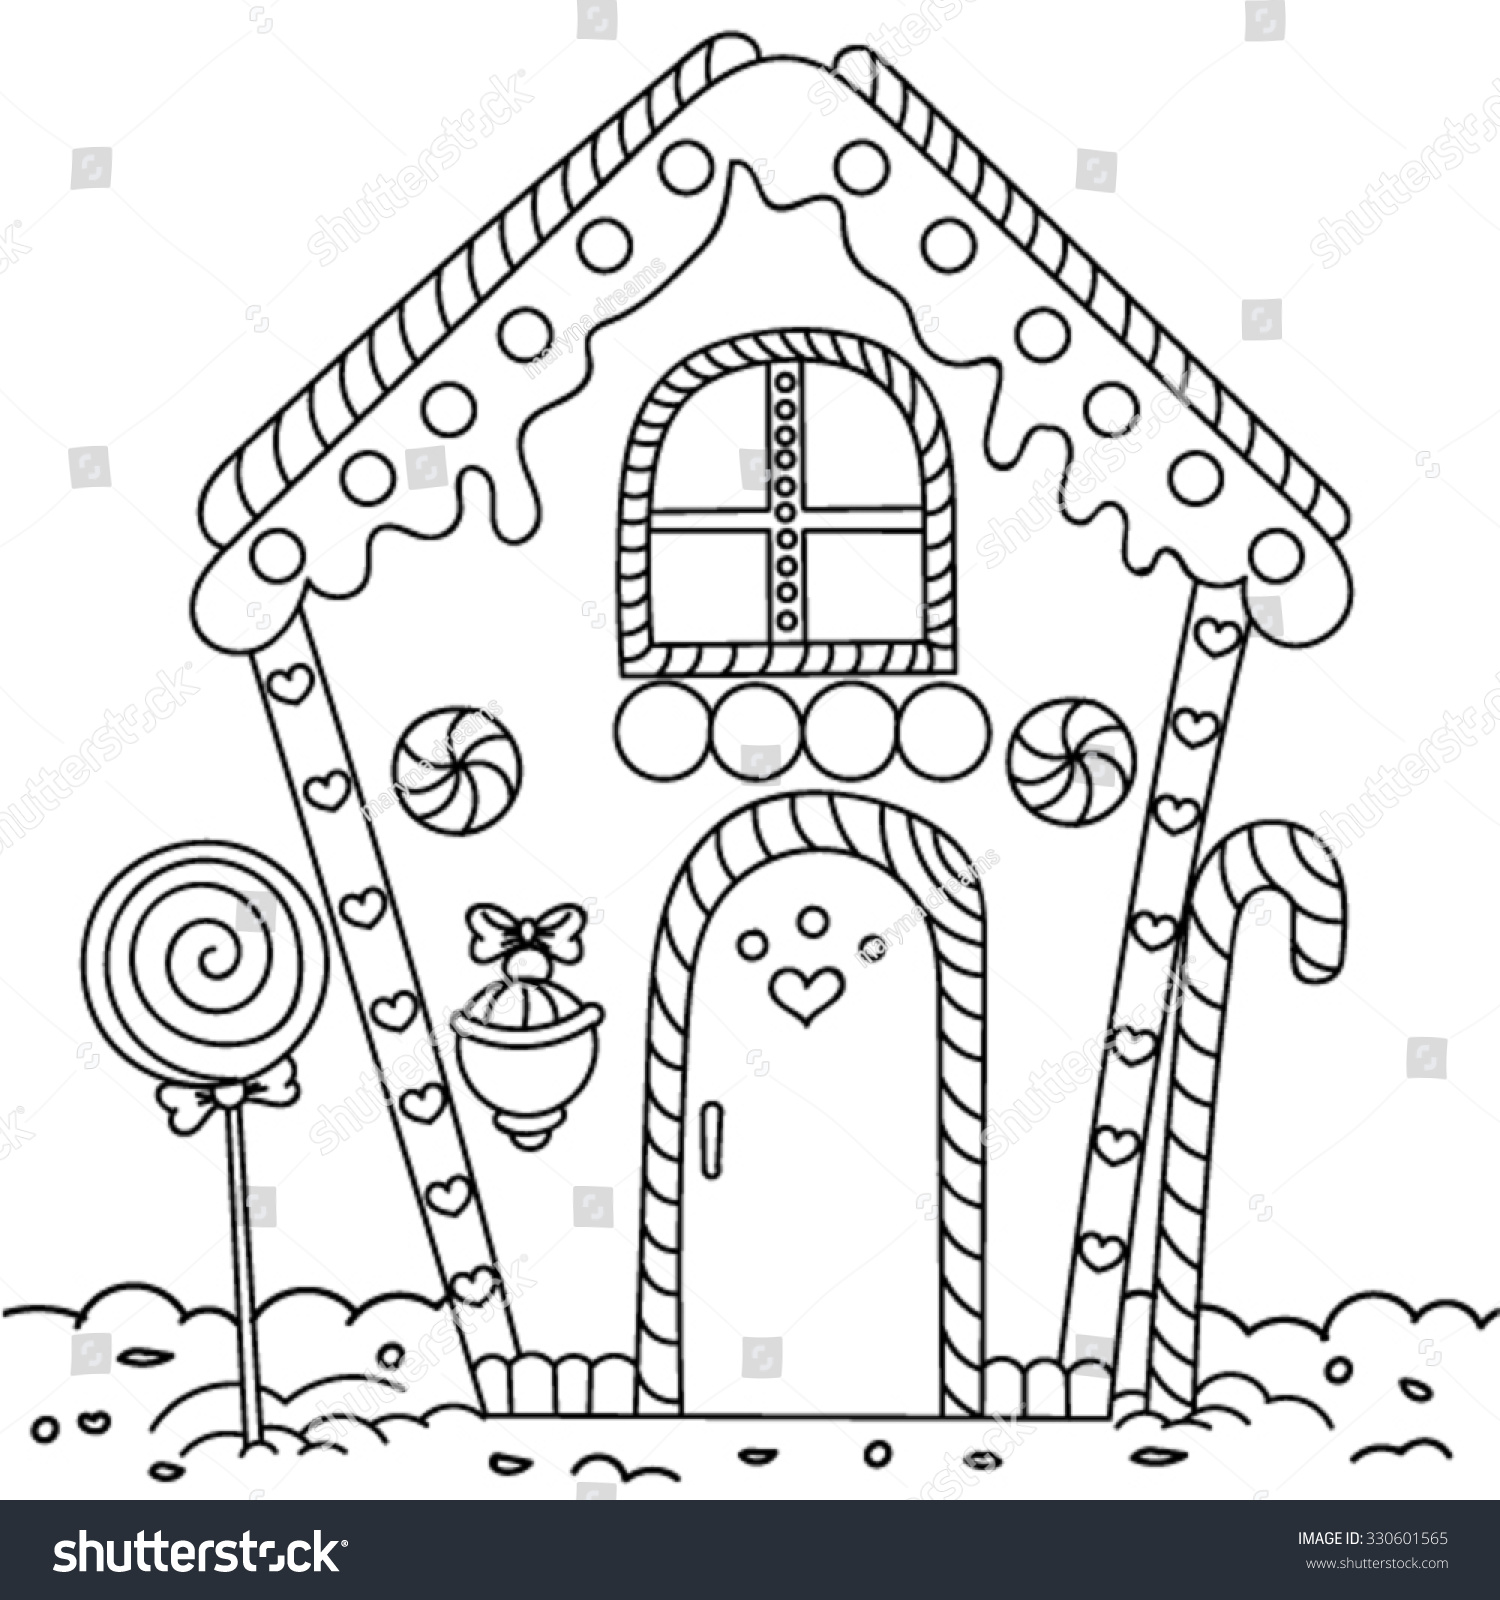 Line Art Illustration Gingerbread House Coloring Stock Vector ...